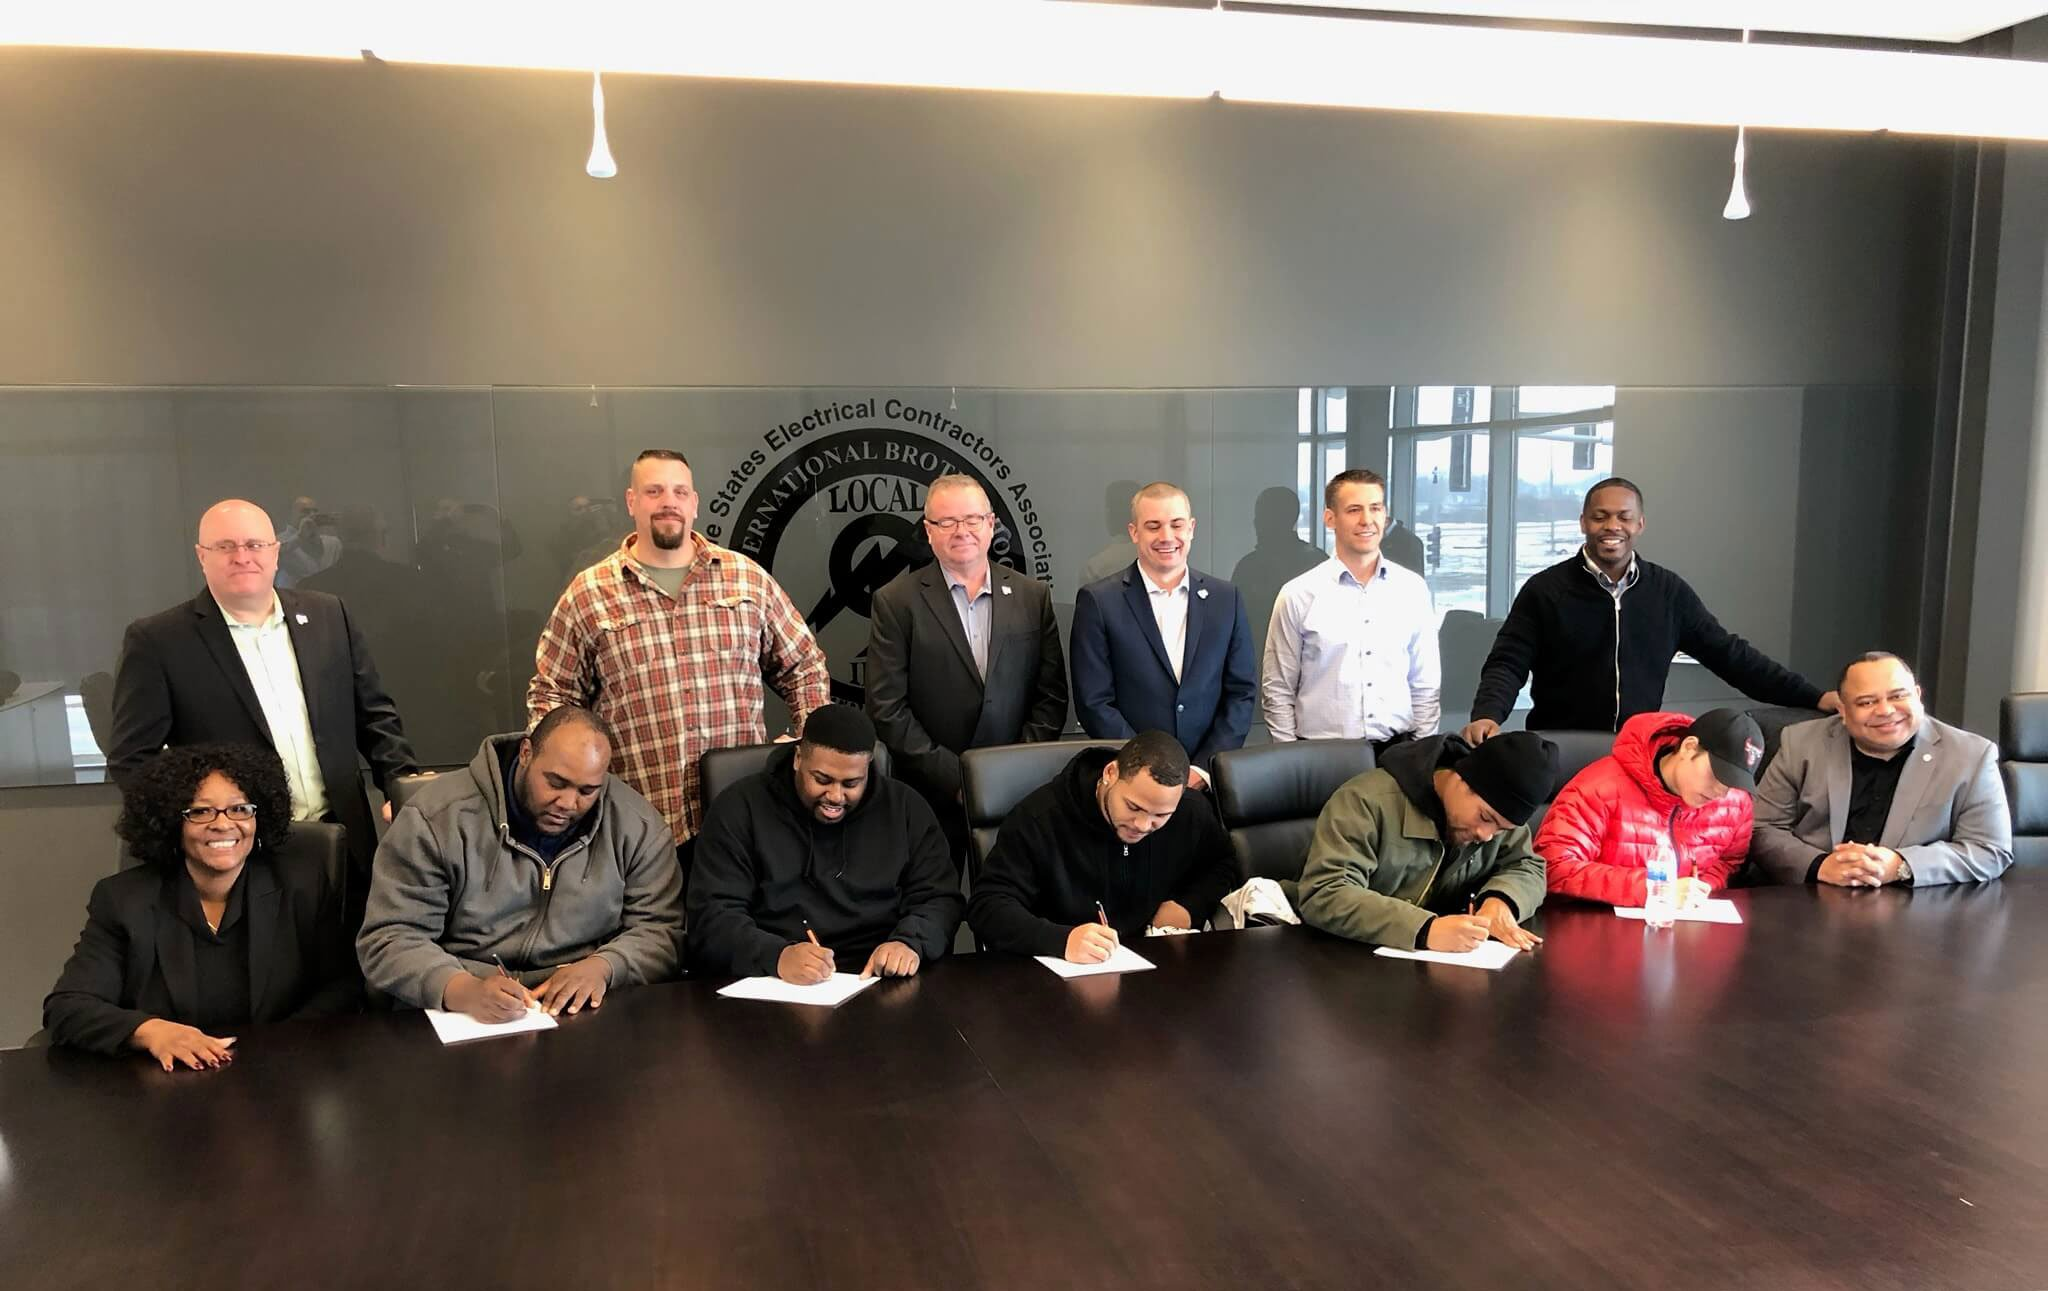 2019 Signing day with Electric Conduit Construction, Alderman Emma Mitts, Jamil Muhammad, Dr. Flavian Prince, Local 9, and five lives that will never be the same.